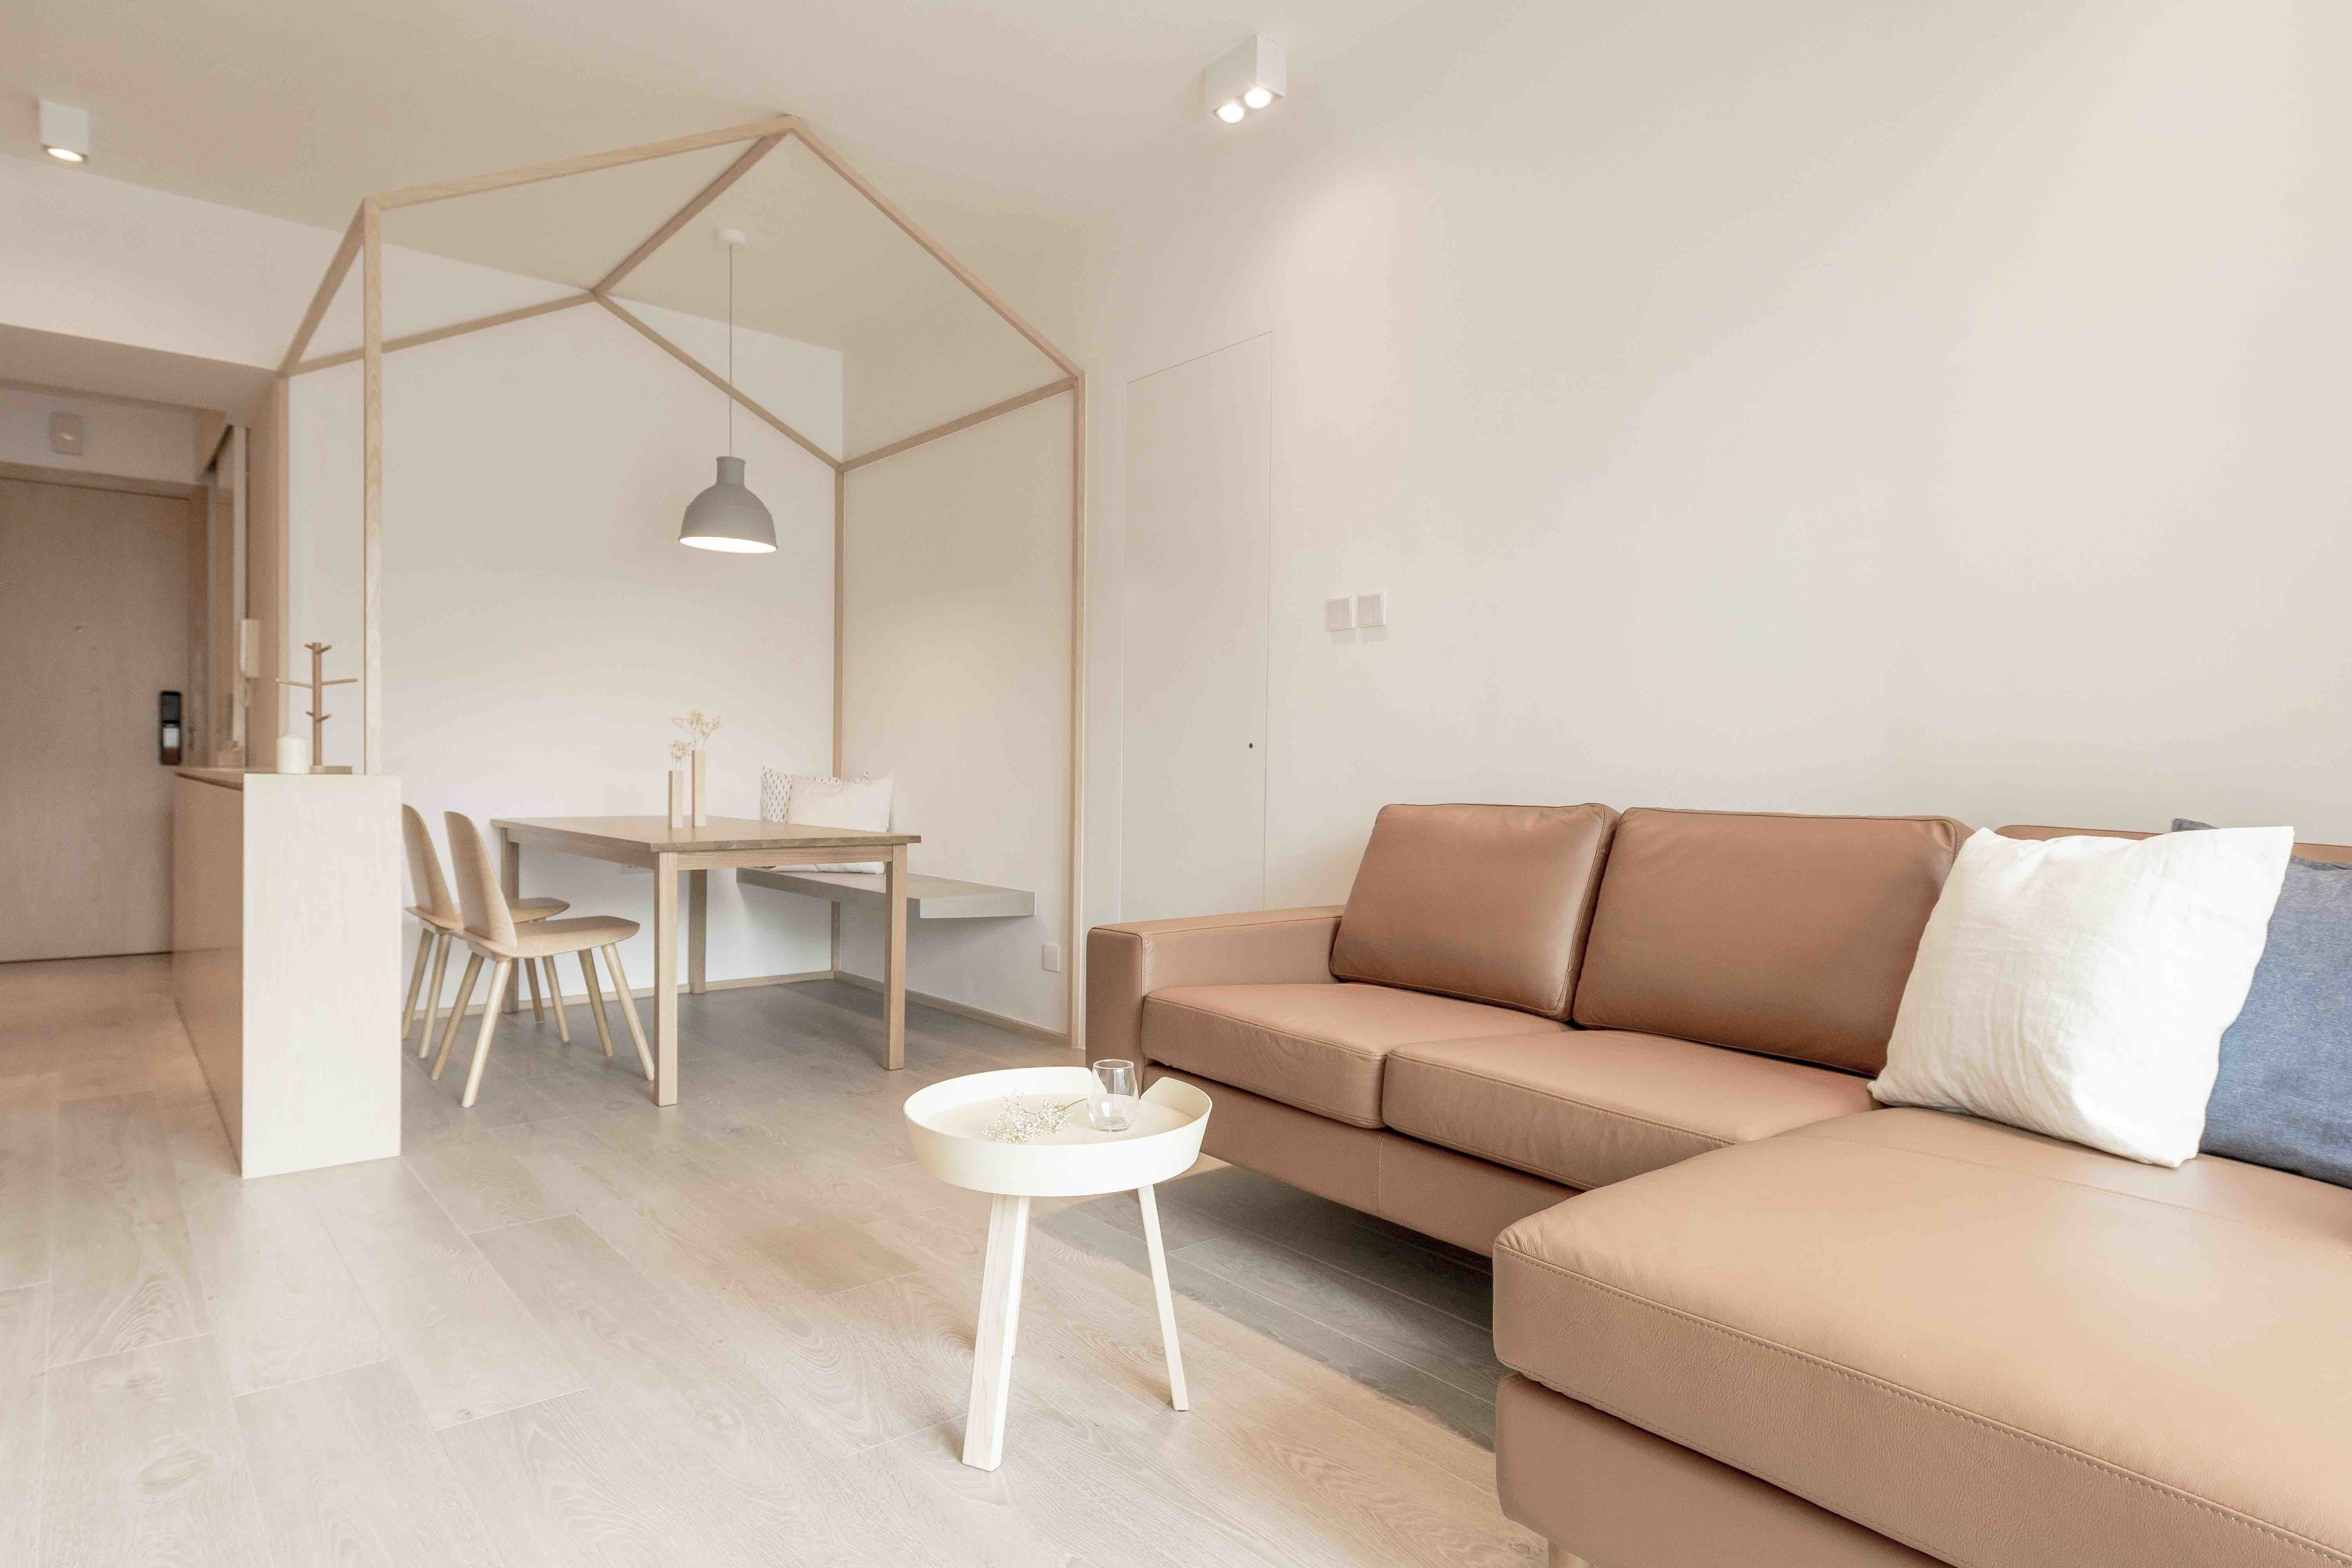 An Origami Inspired Apartment In Hong Kong With Tons Of Smart